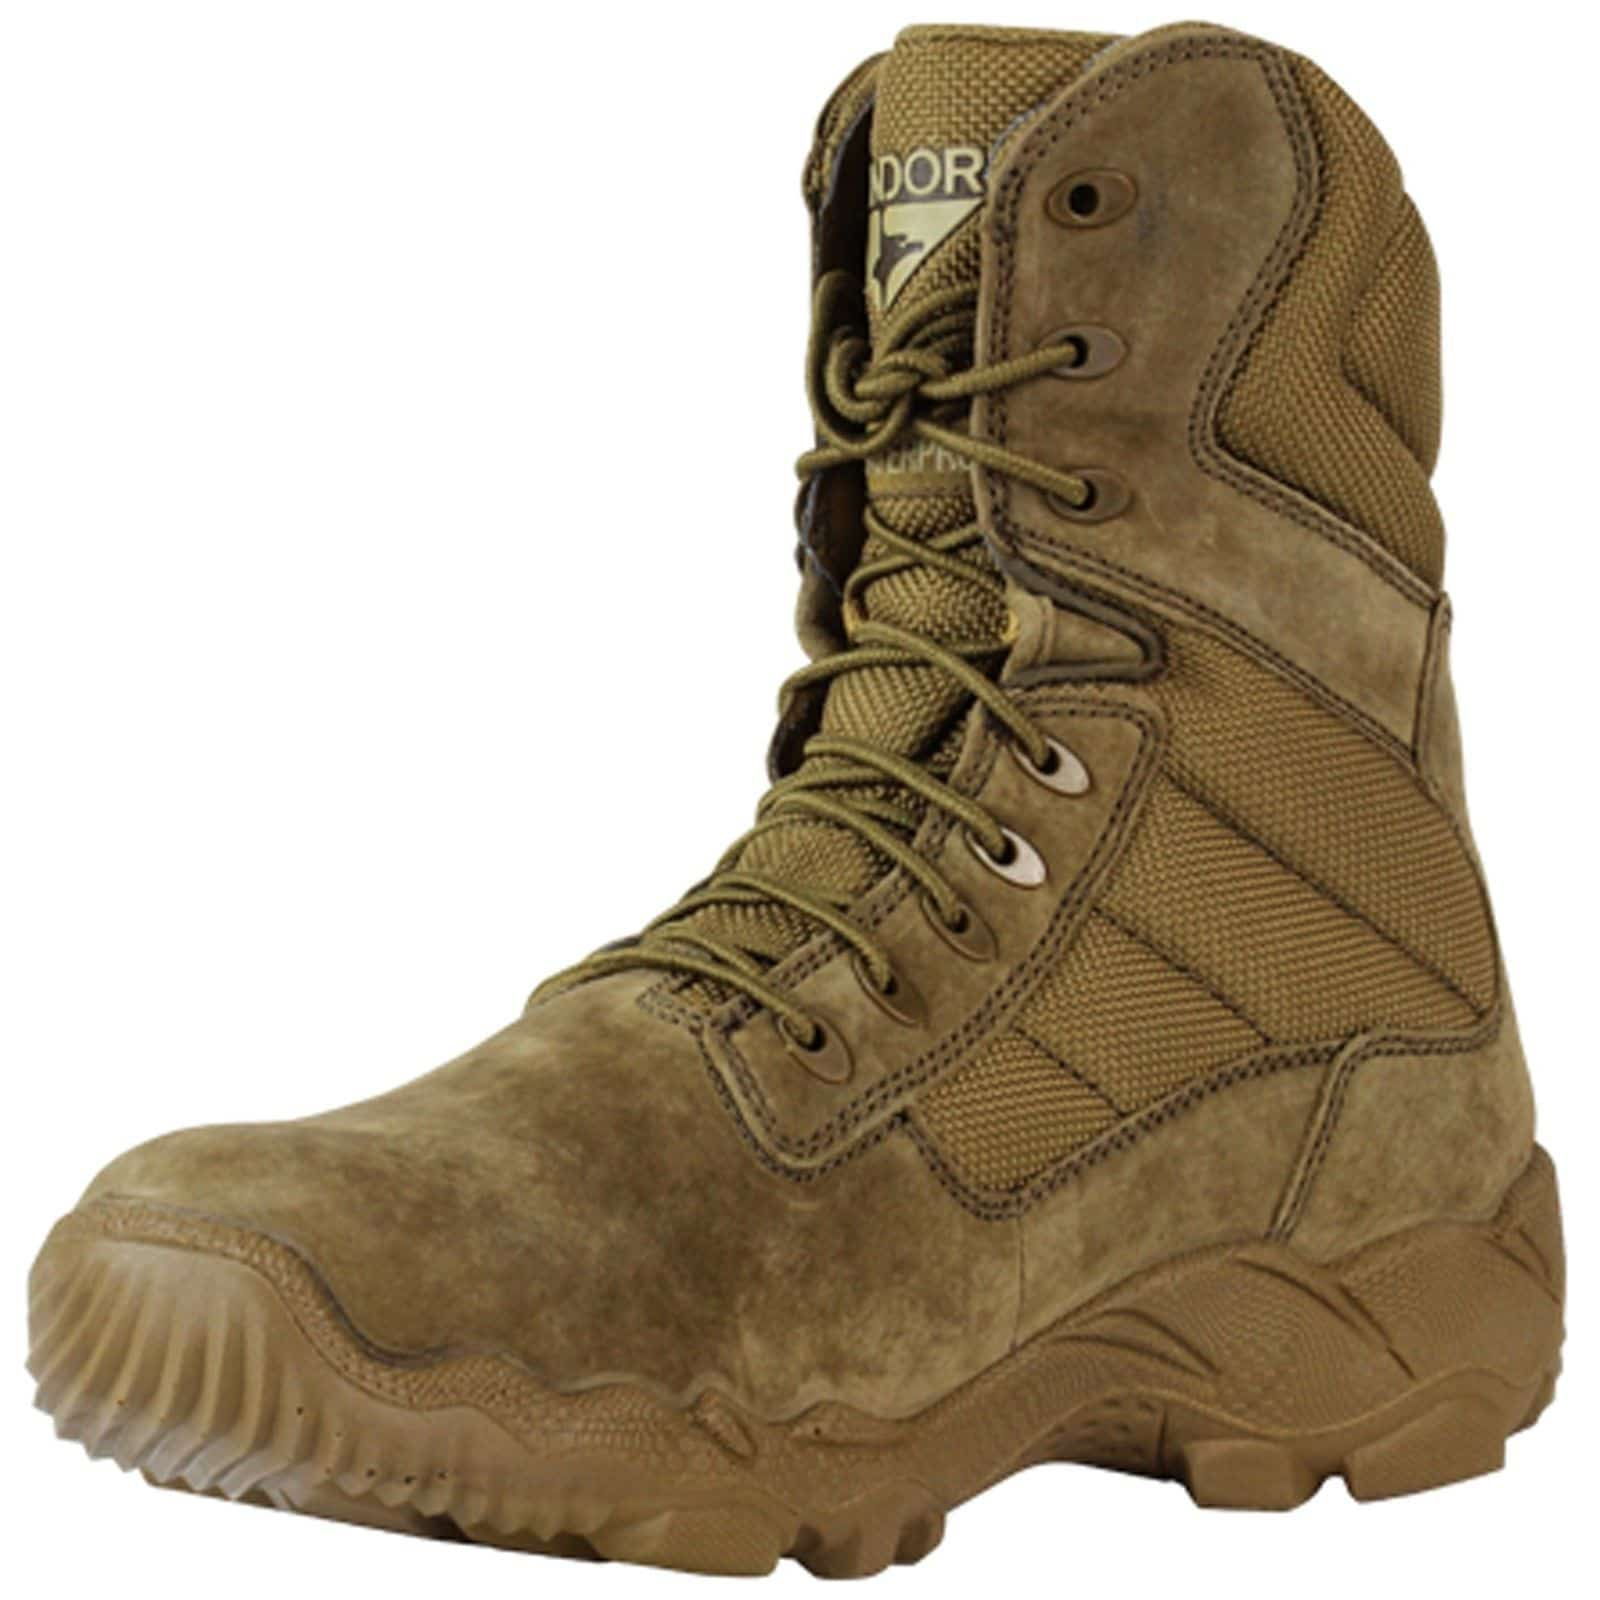 8b7e6c1b1af Bailey - Coyote Brown Tactical Boot